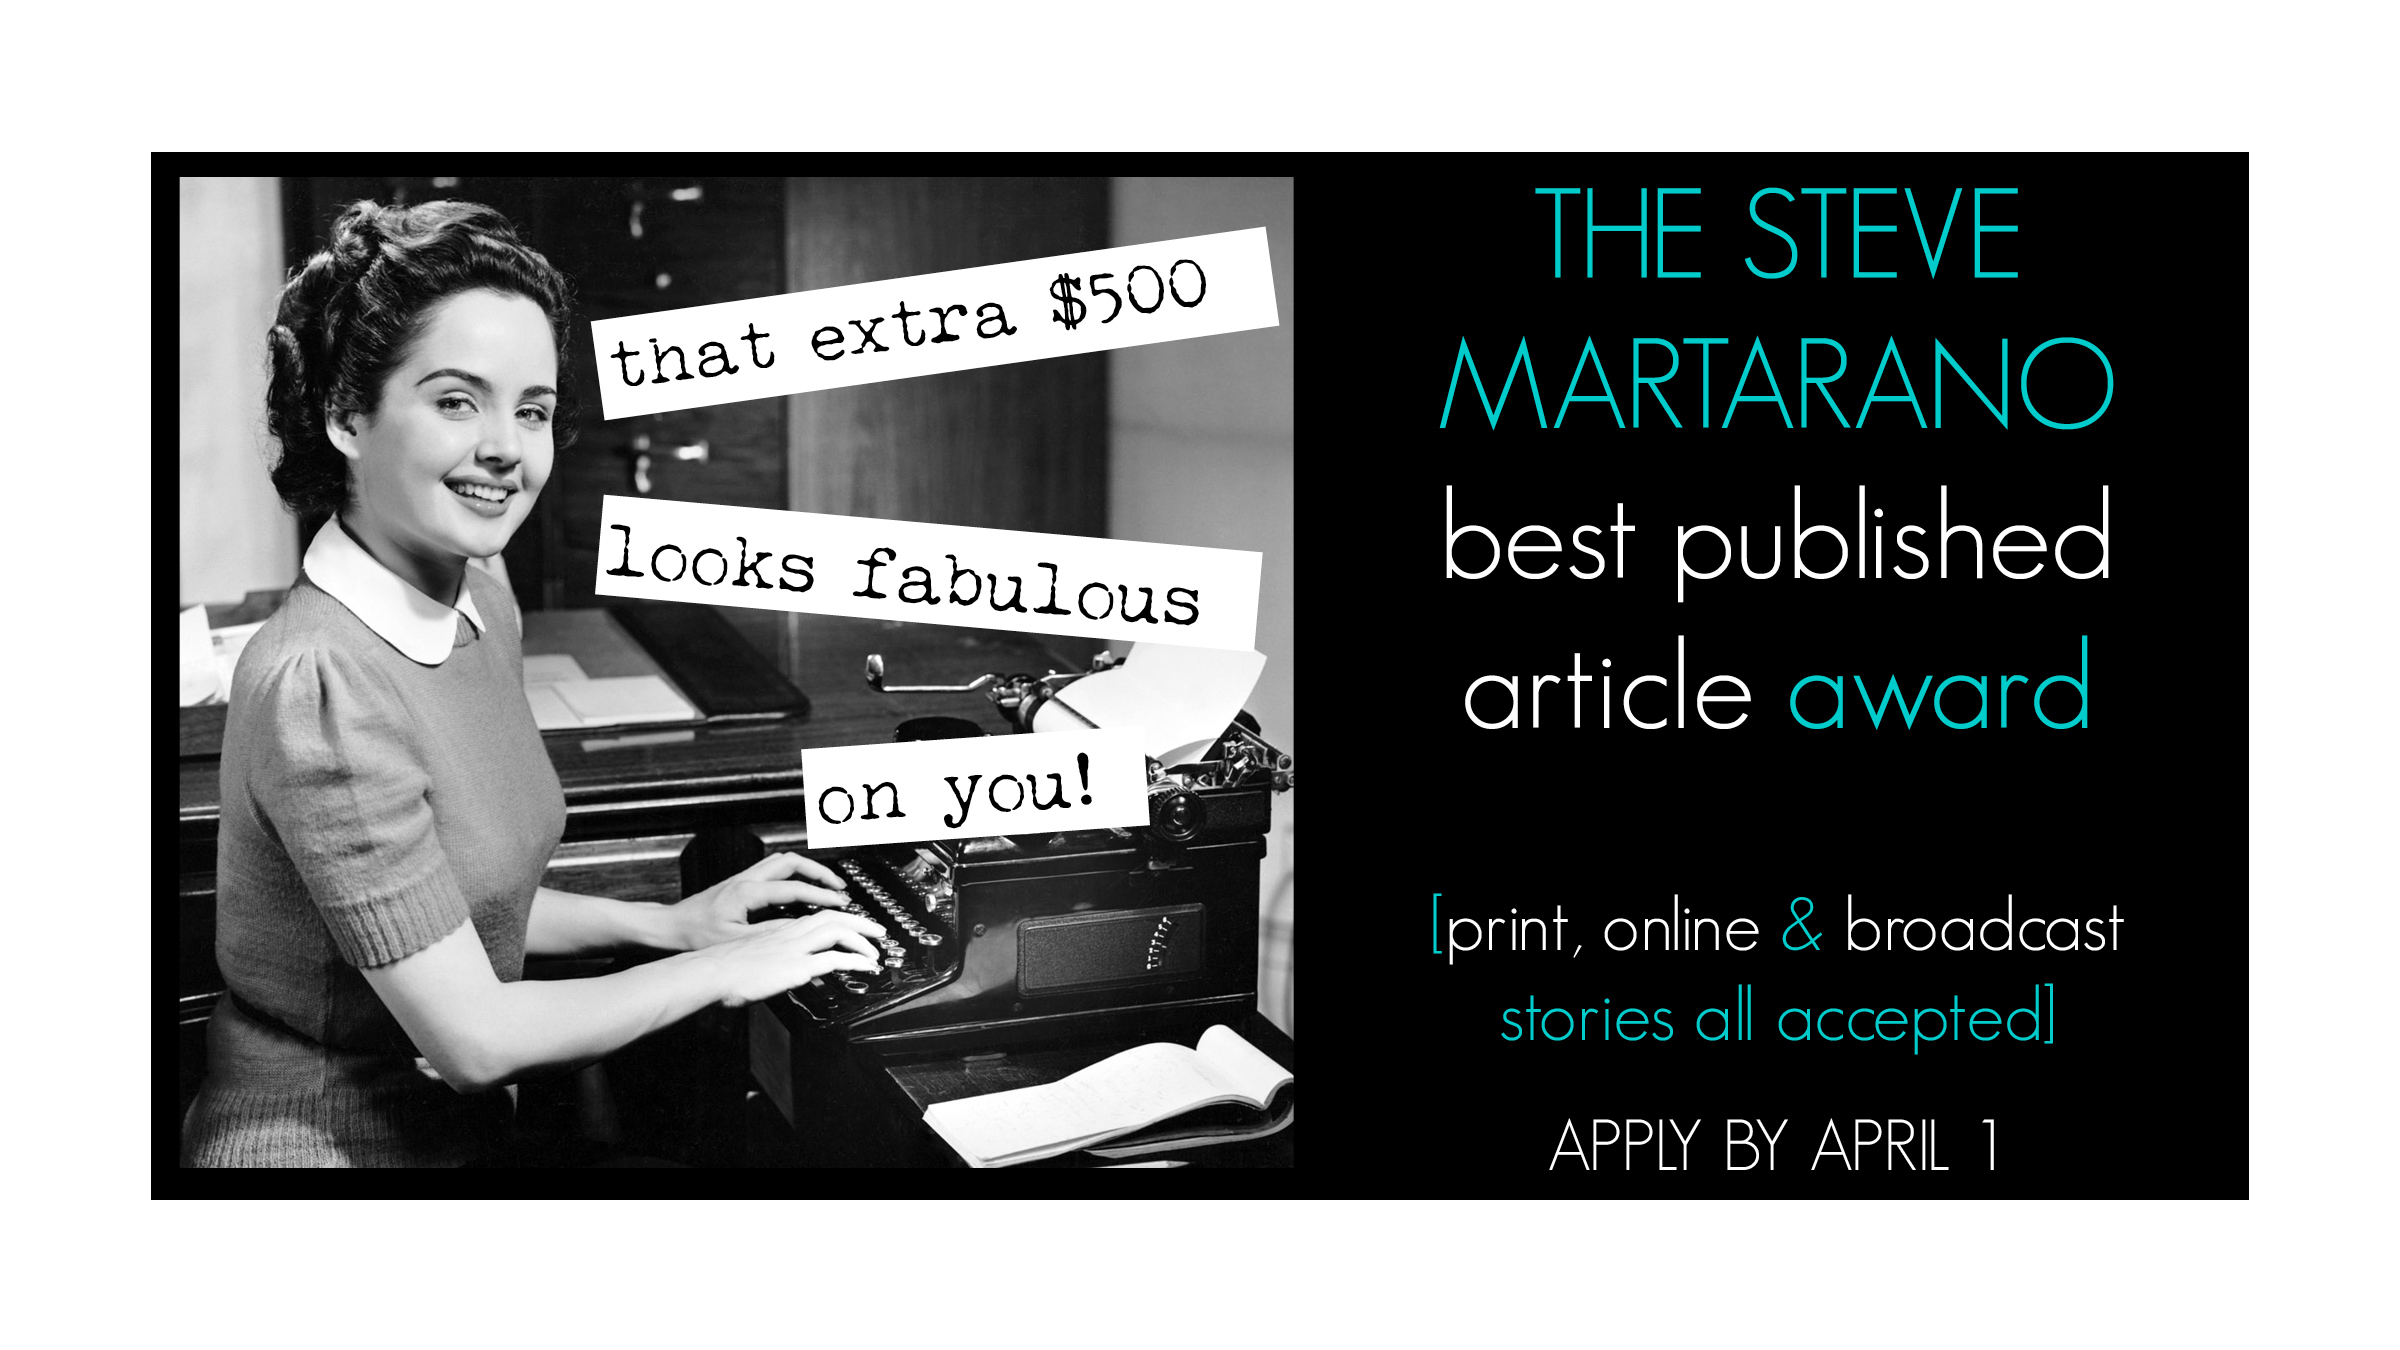 Submit published work for a chance to win $600